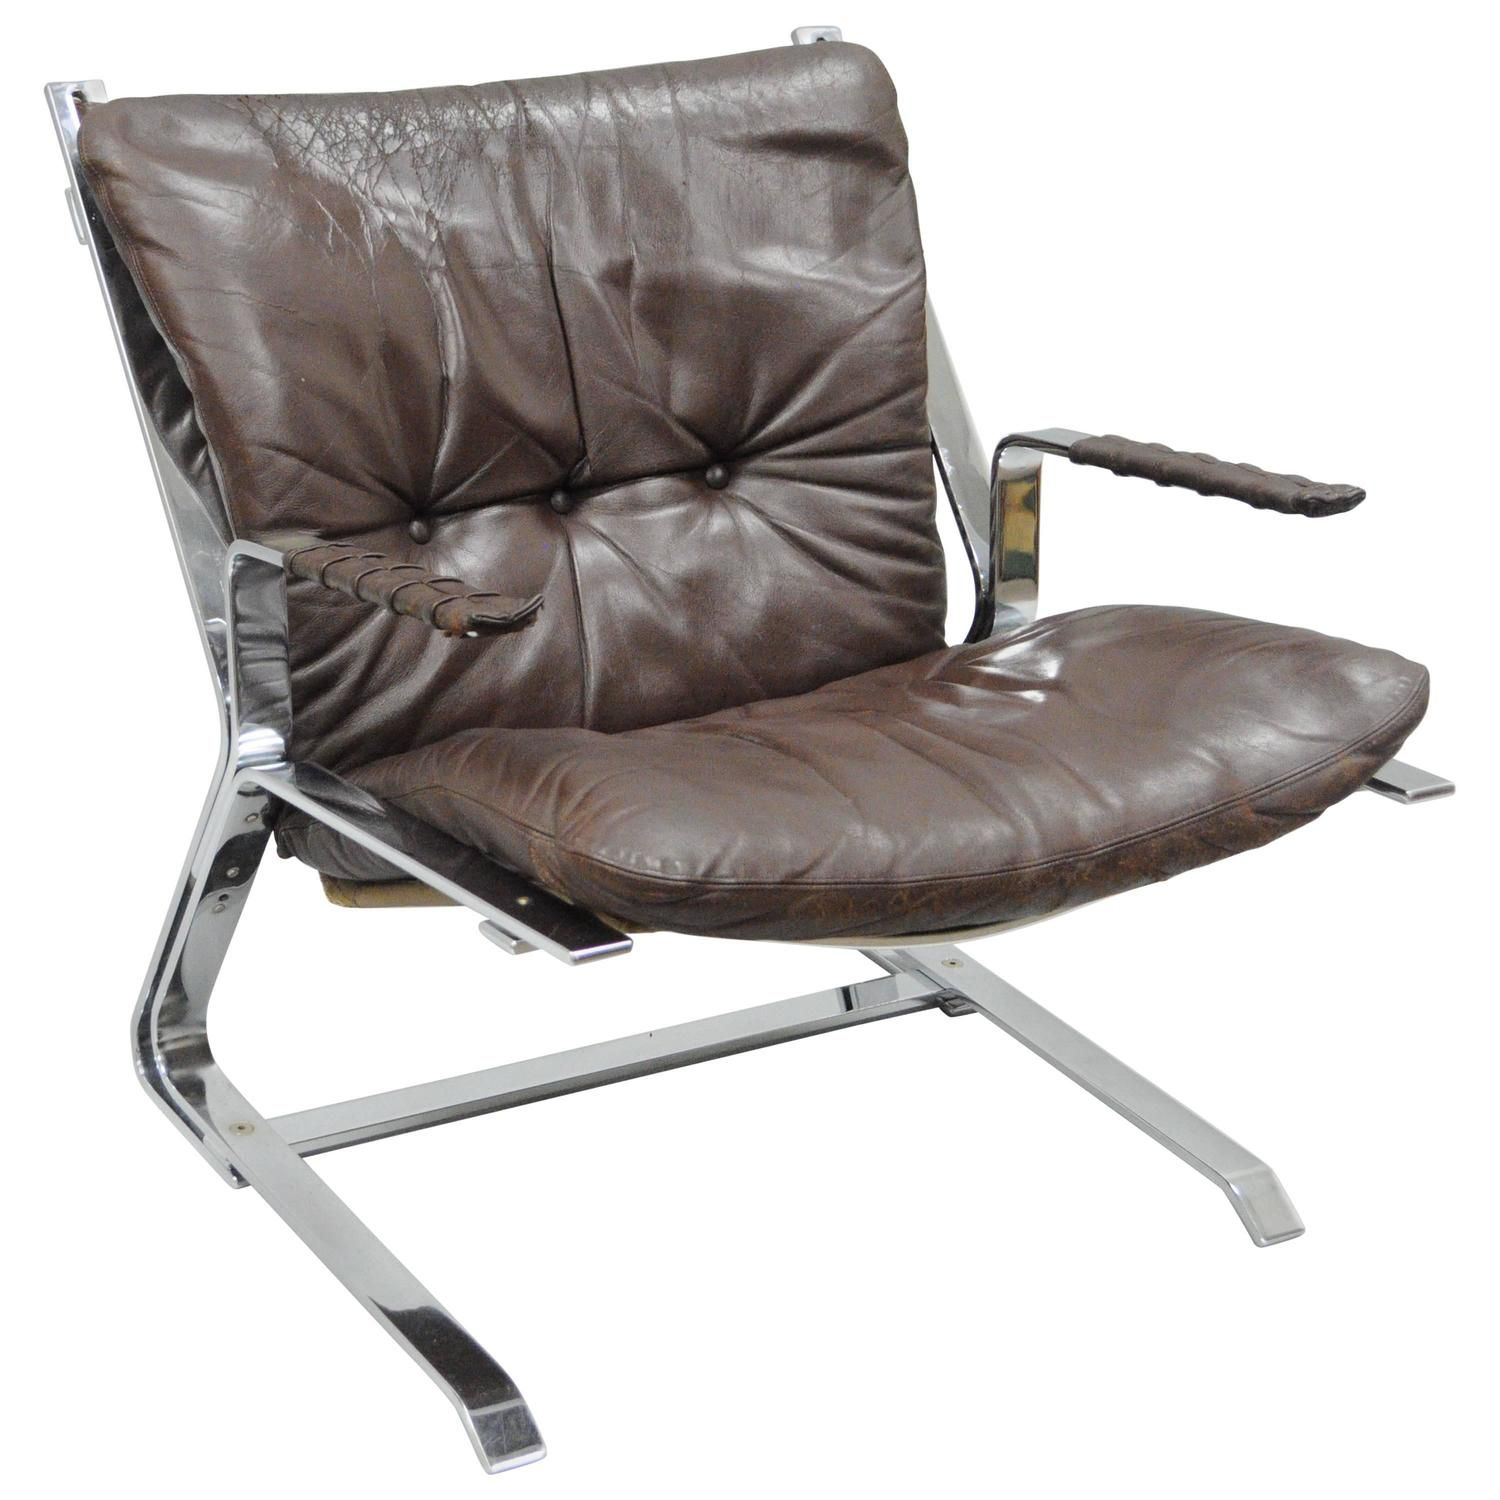 Strange Pirate Lounge Chair Brown Leather And Chrome By Elsa And Theyellowbook Wood Chair Design Ideas Theyellowbookinfo